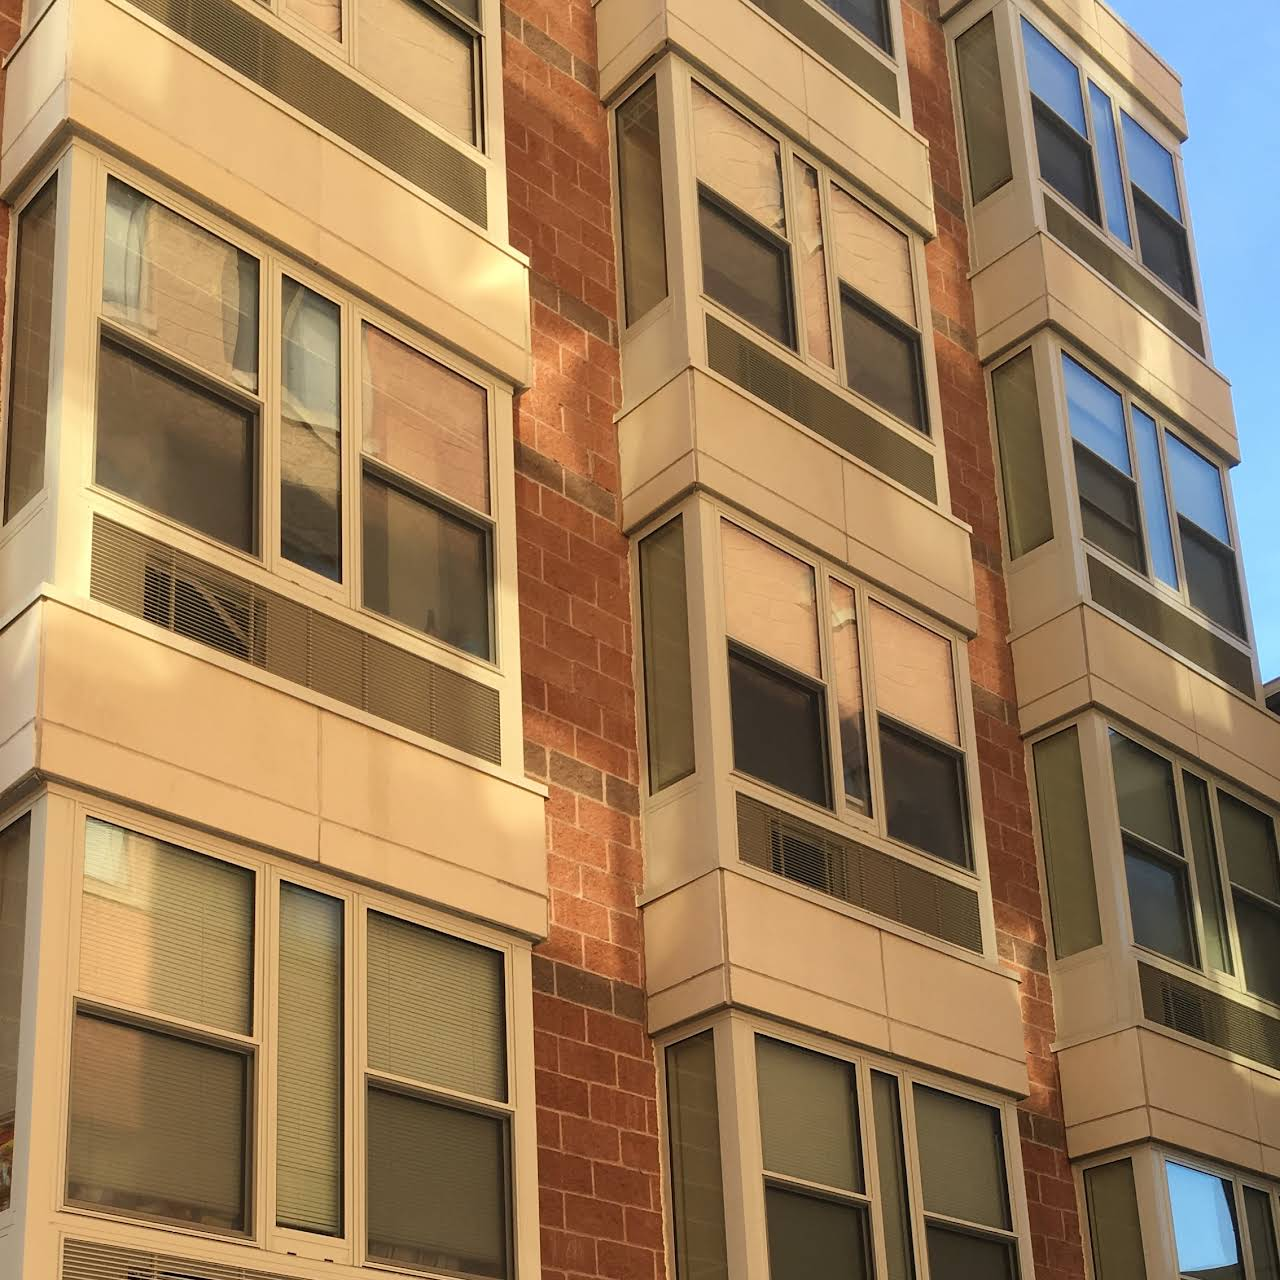 Fontana Apartments - Furnished Apartment Building in Ithaca